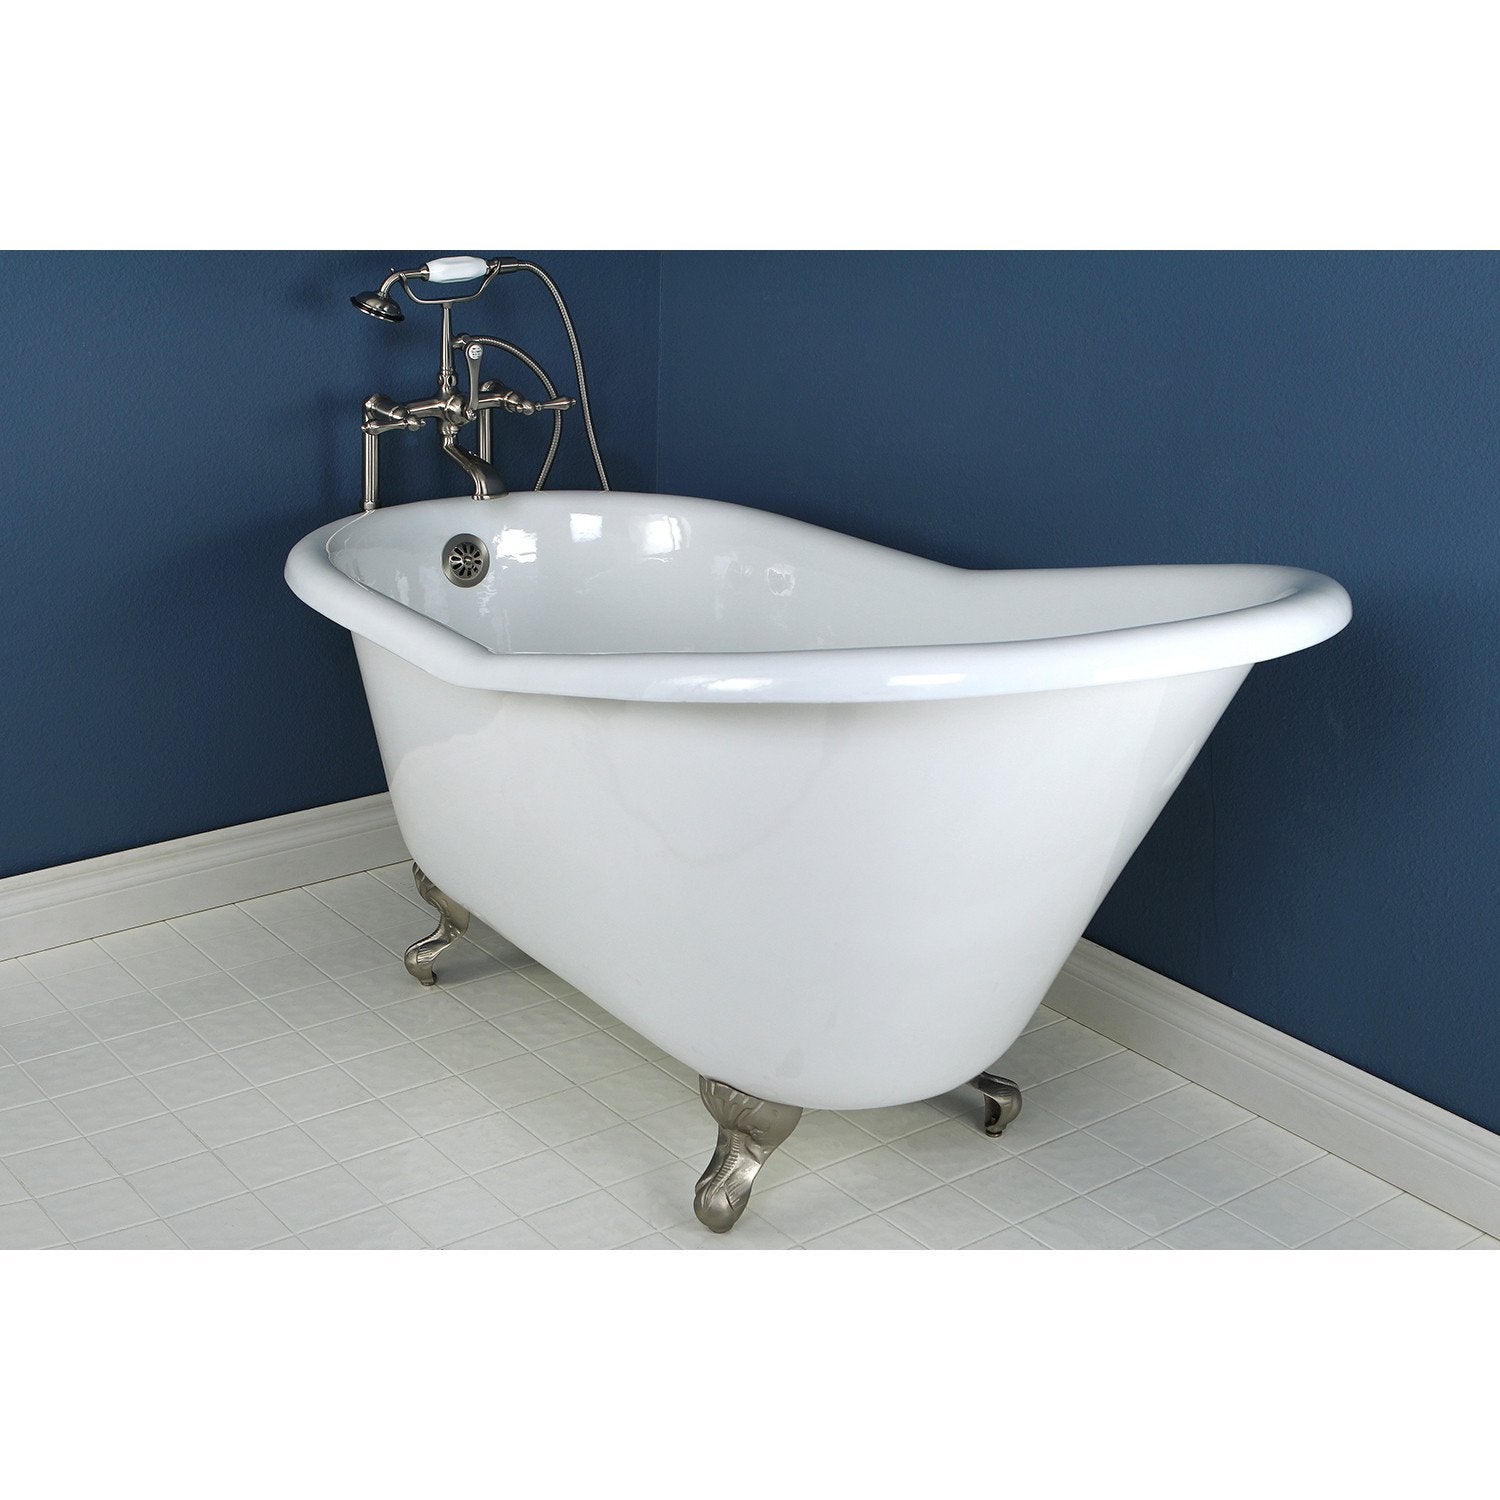 60 small cast iron white slipper clawfoot tub with satin nickel feet for Small clawfoot tubs for small bathrooms